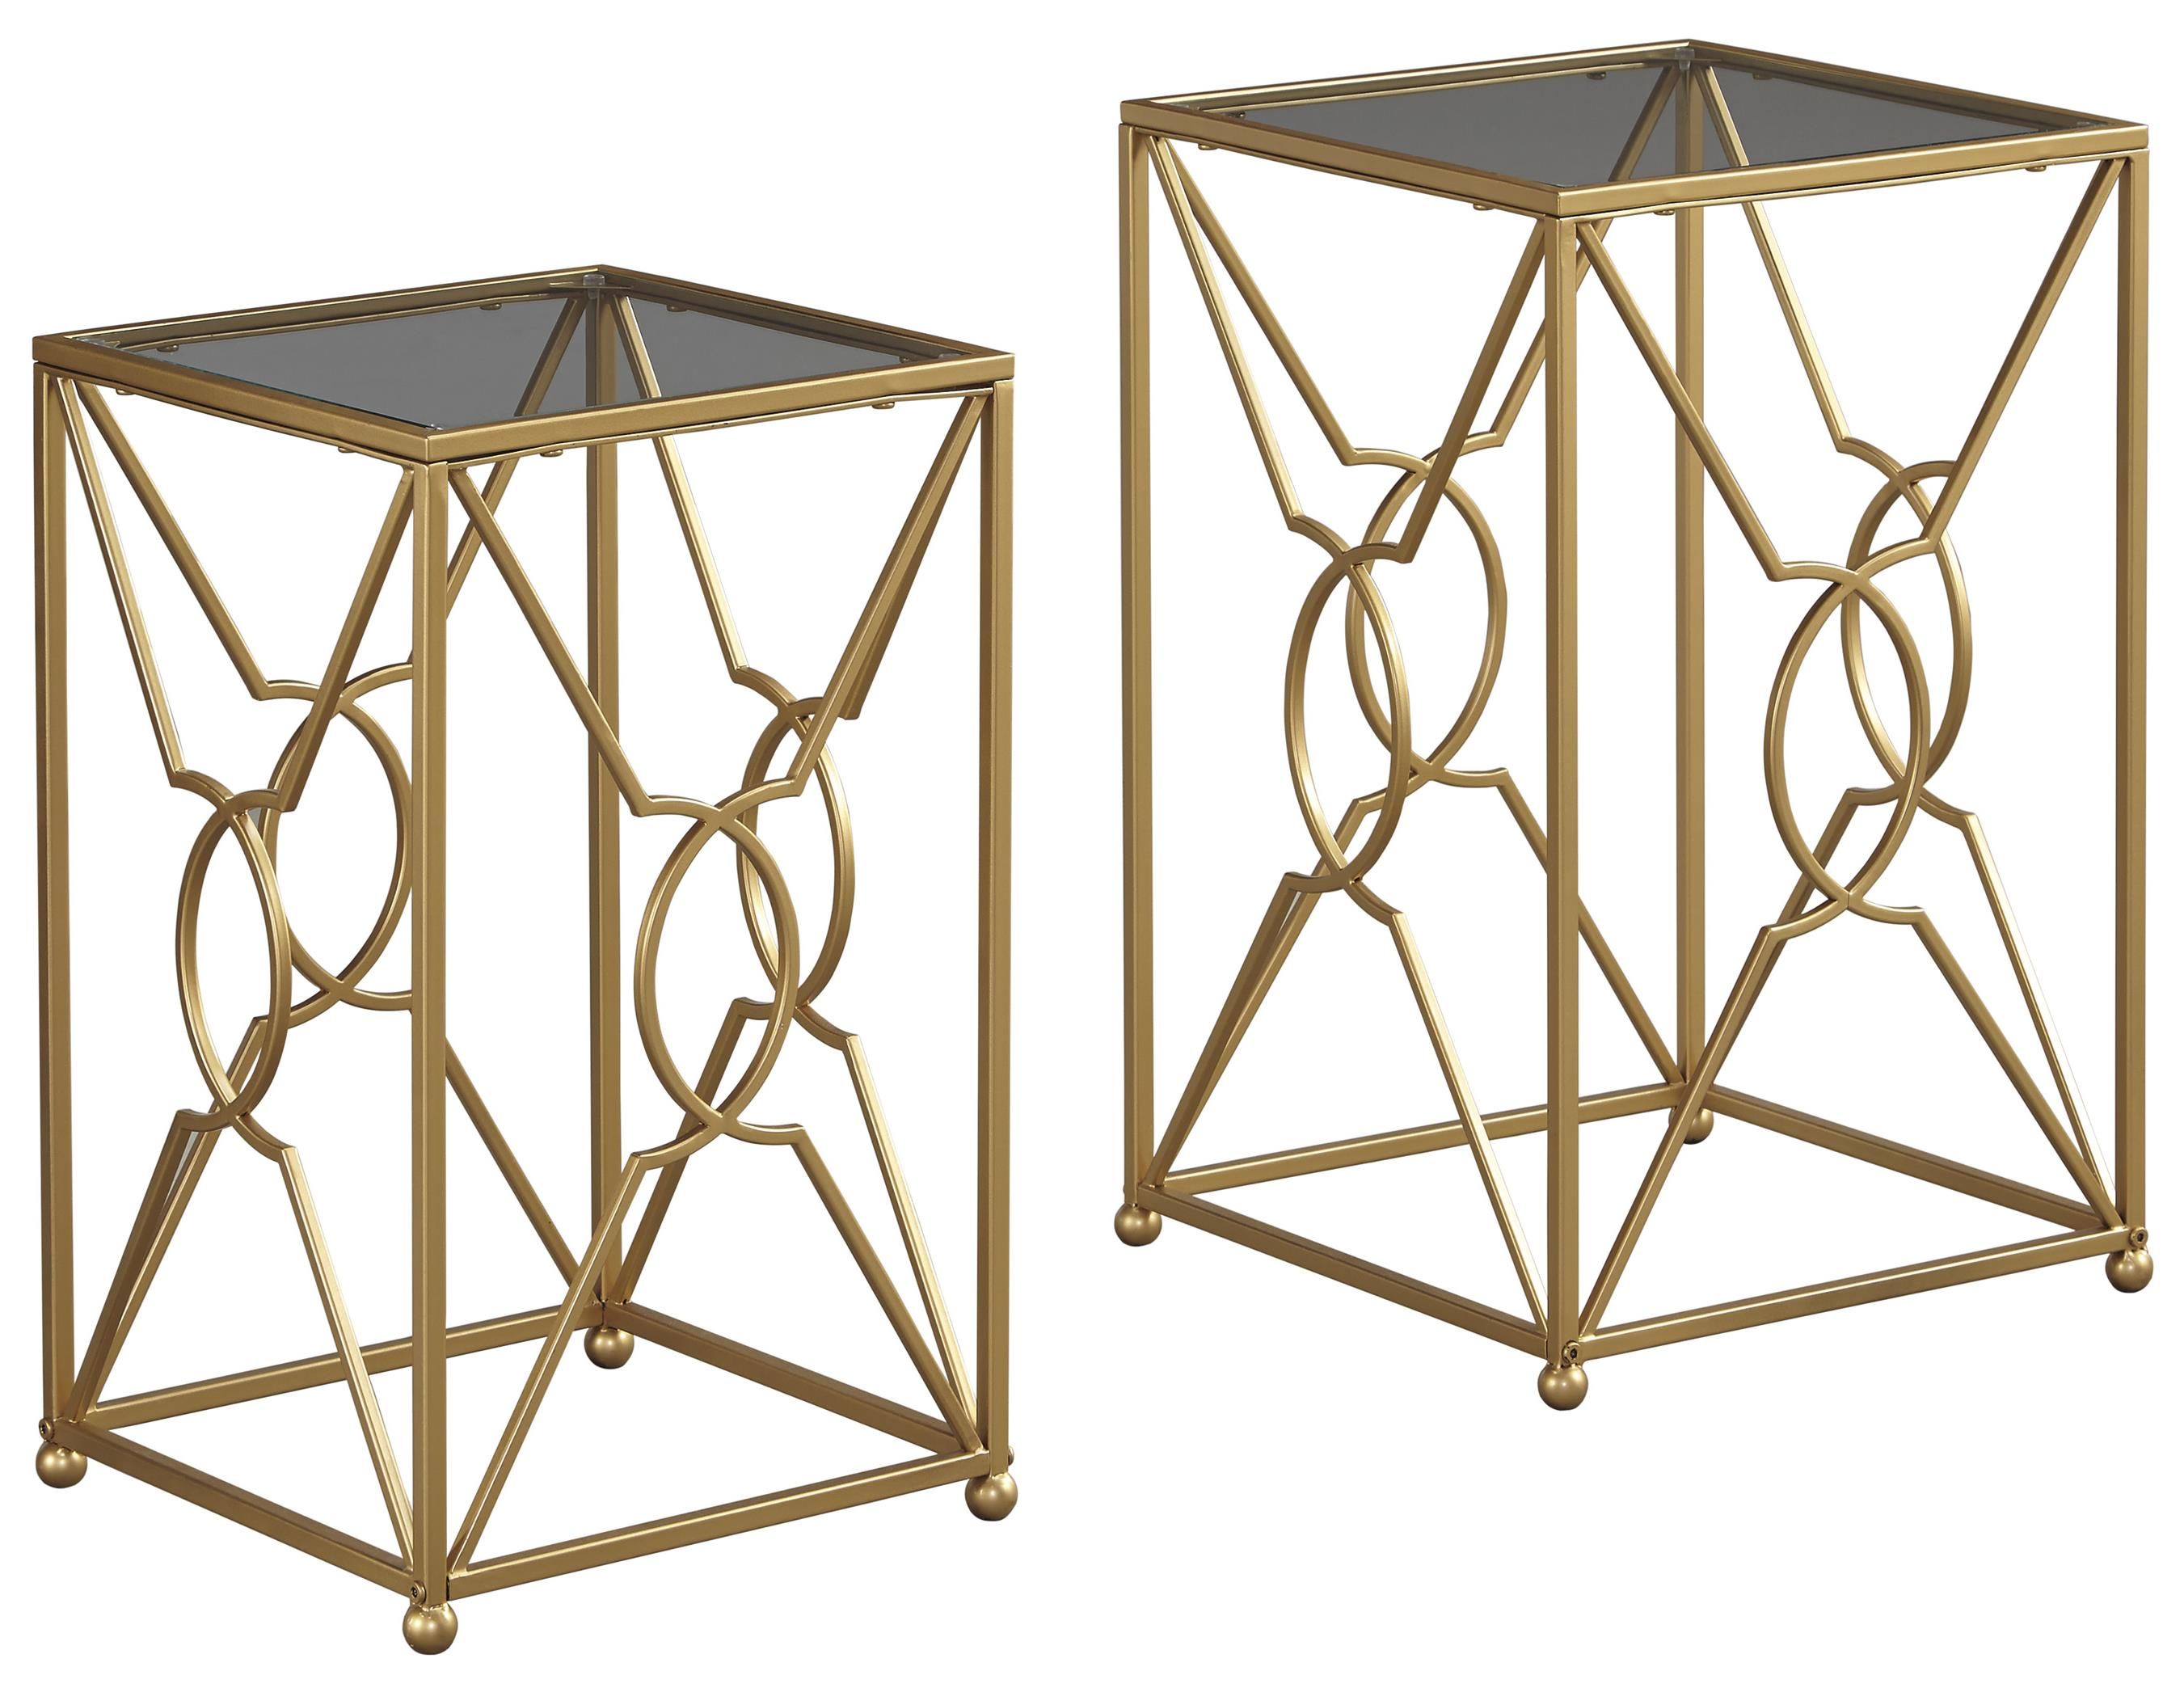 Signature Design by Ashley Marxim Nesting End Tables - Item Number: T506-111